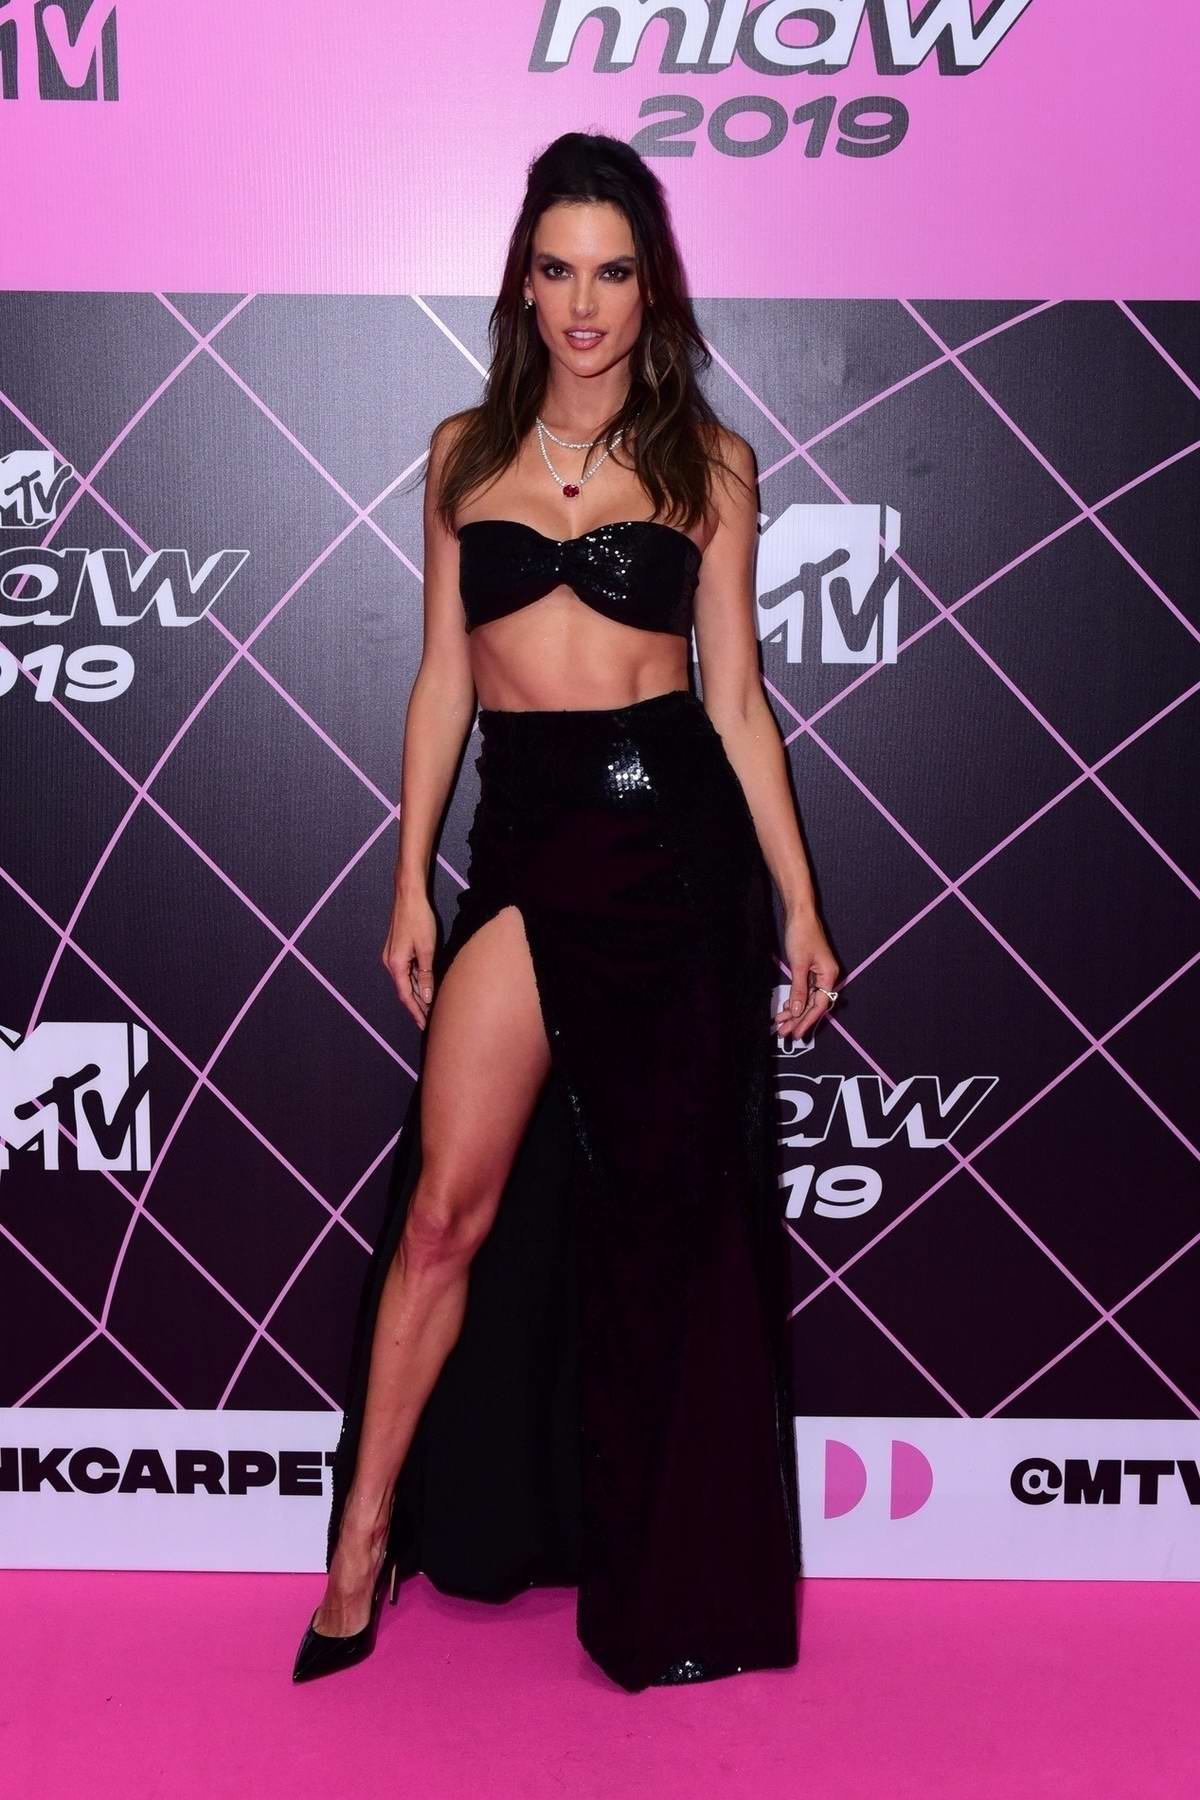 Alessandra Ambrosio attends the 2019 MTV Millennial Awards in Sao Paulo, Brazil